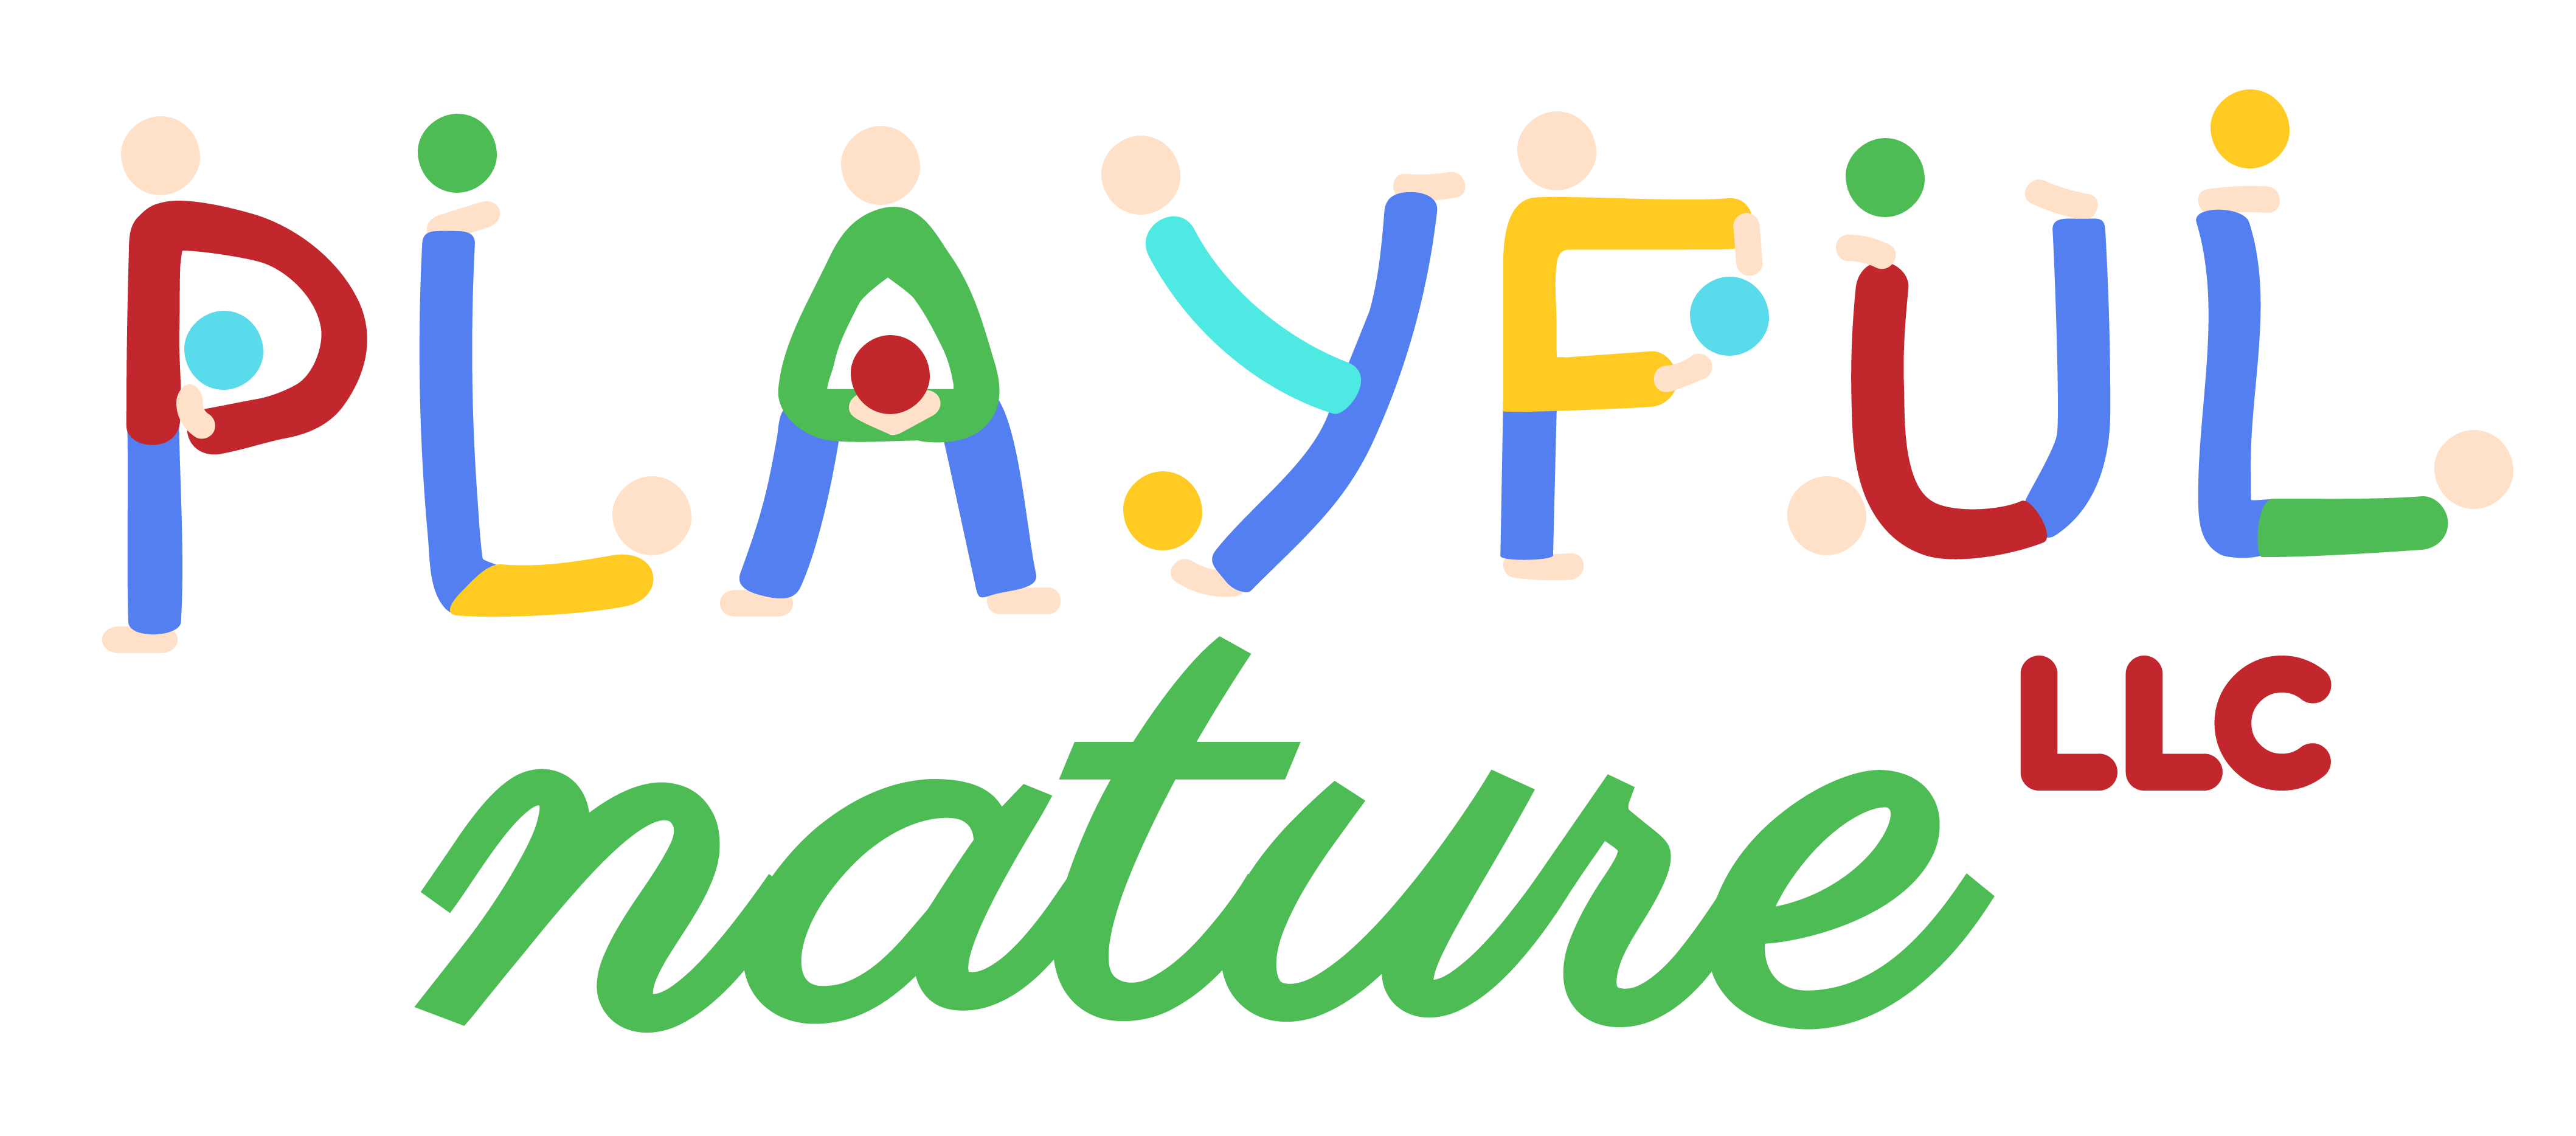 PLayful Nature LLC creators of the Willa Walker